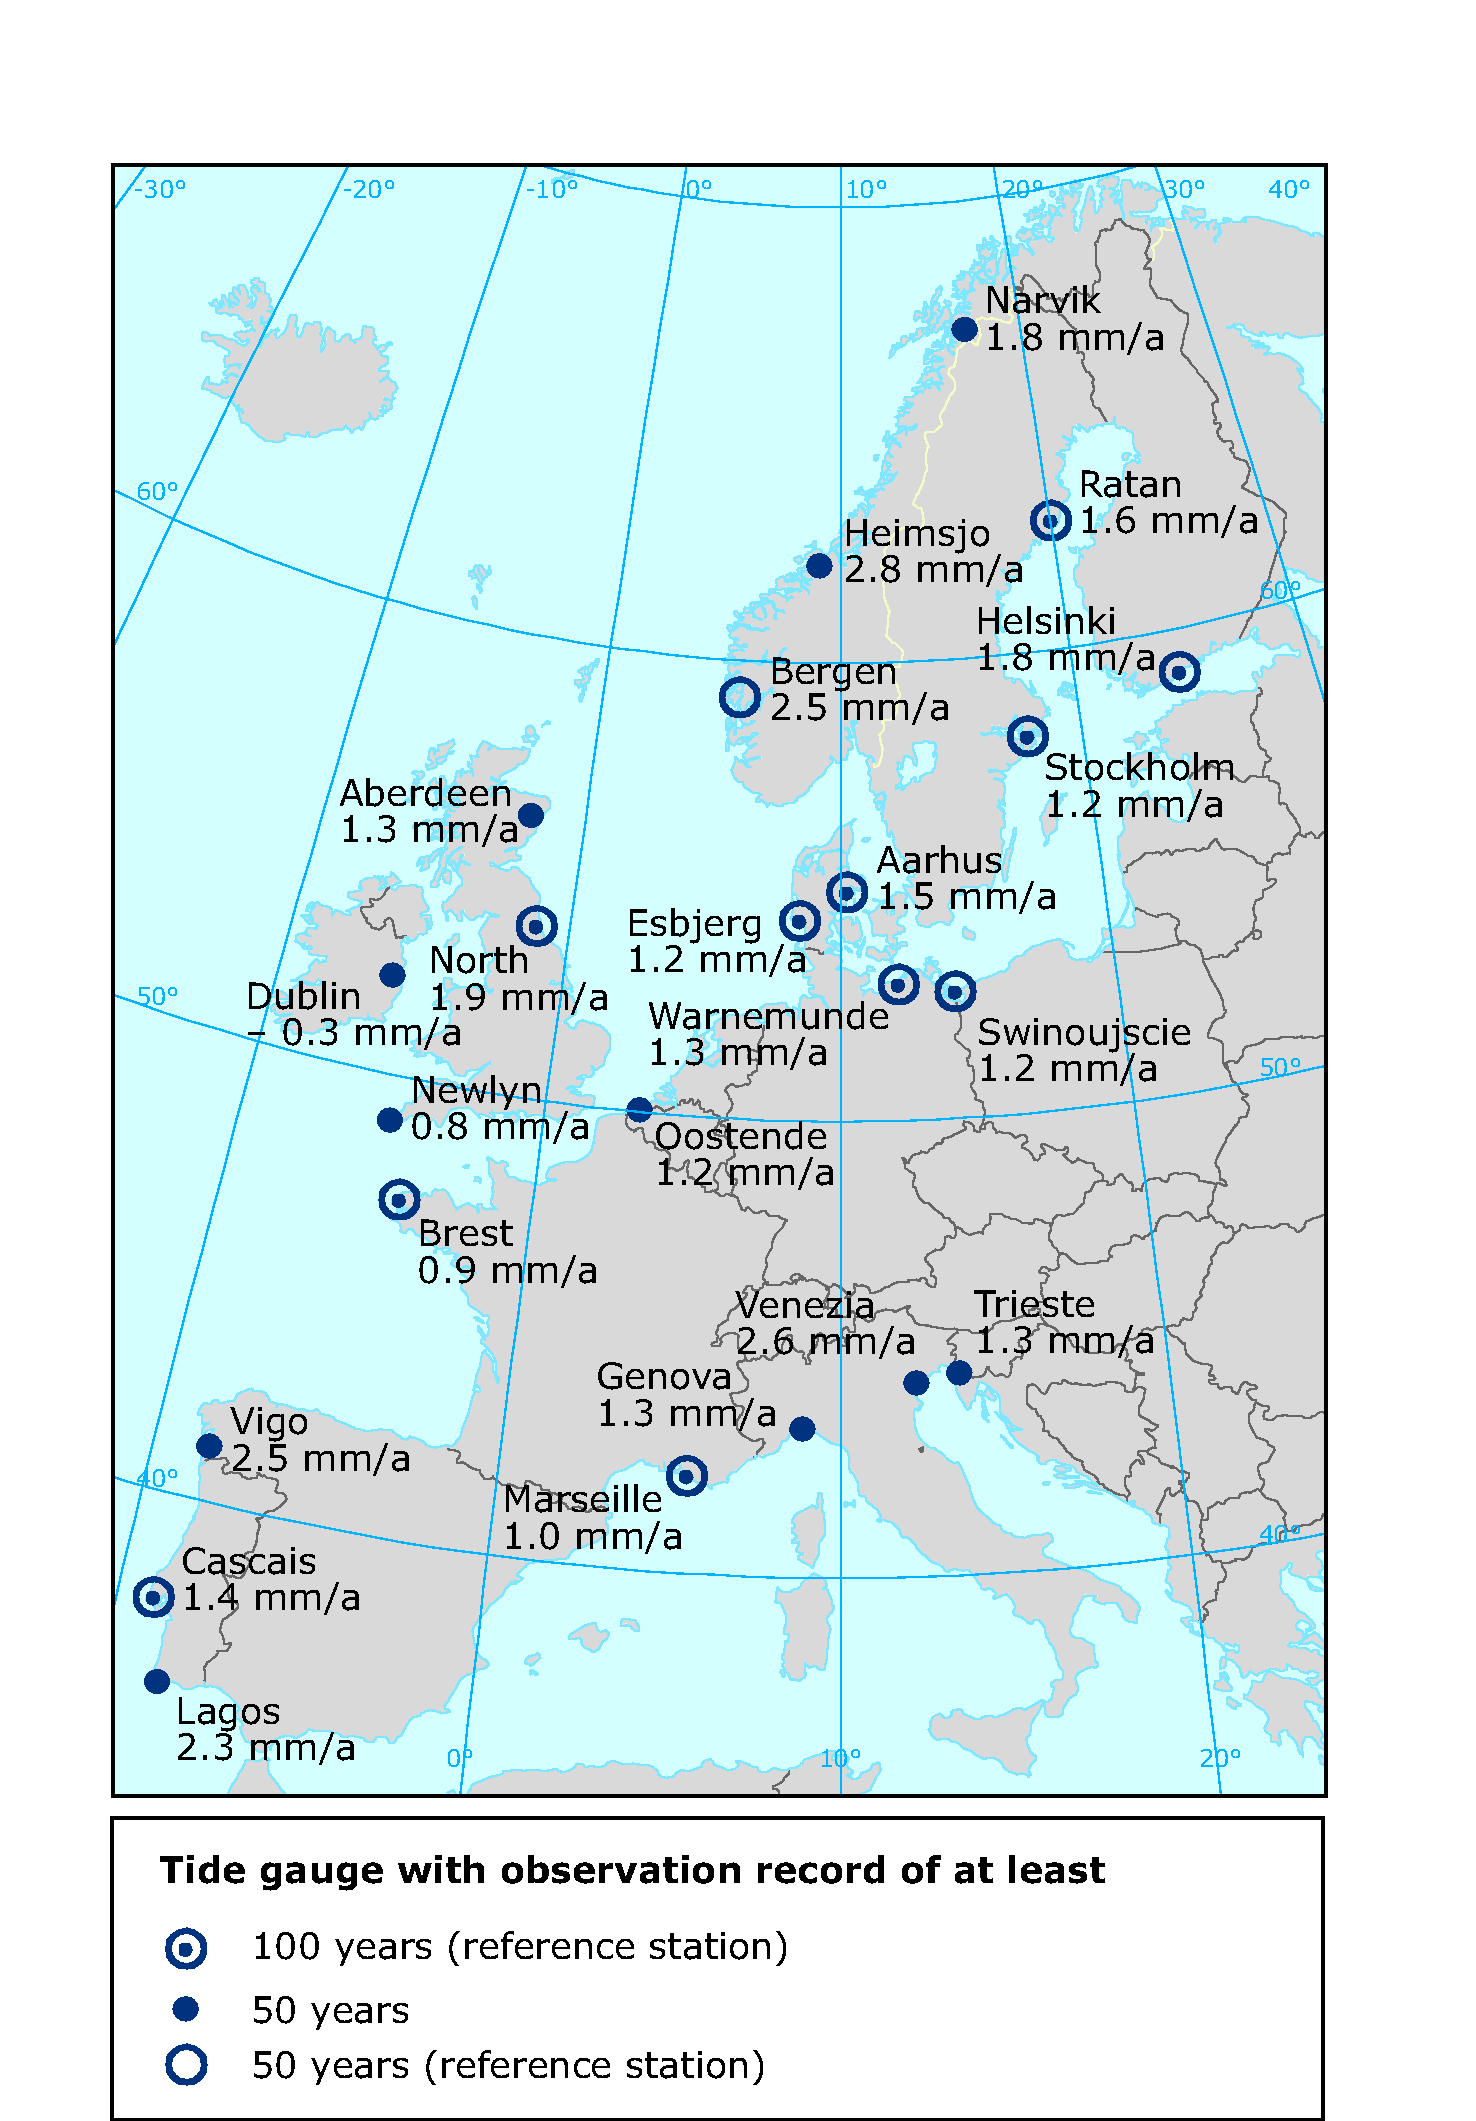 Sea-level change at different European tide-gauge stations 1896-2004